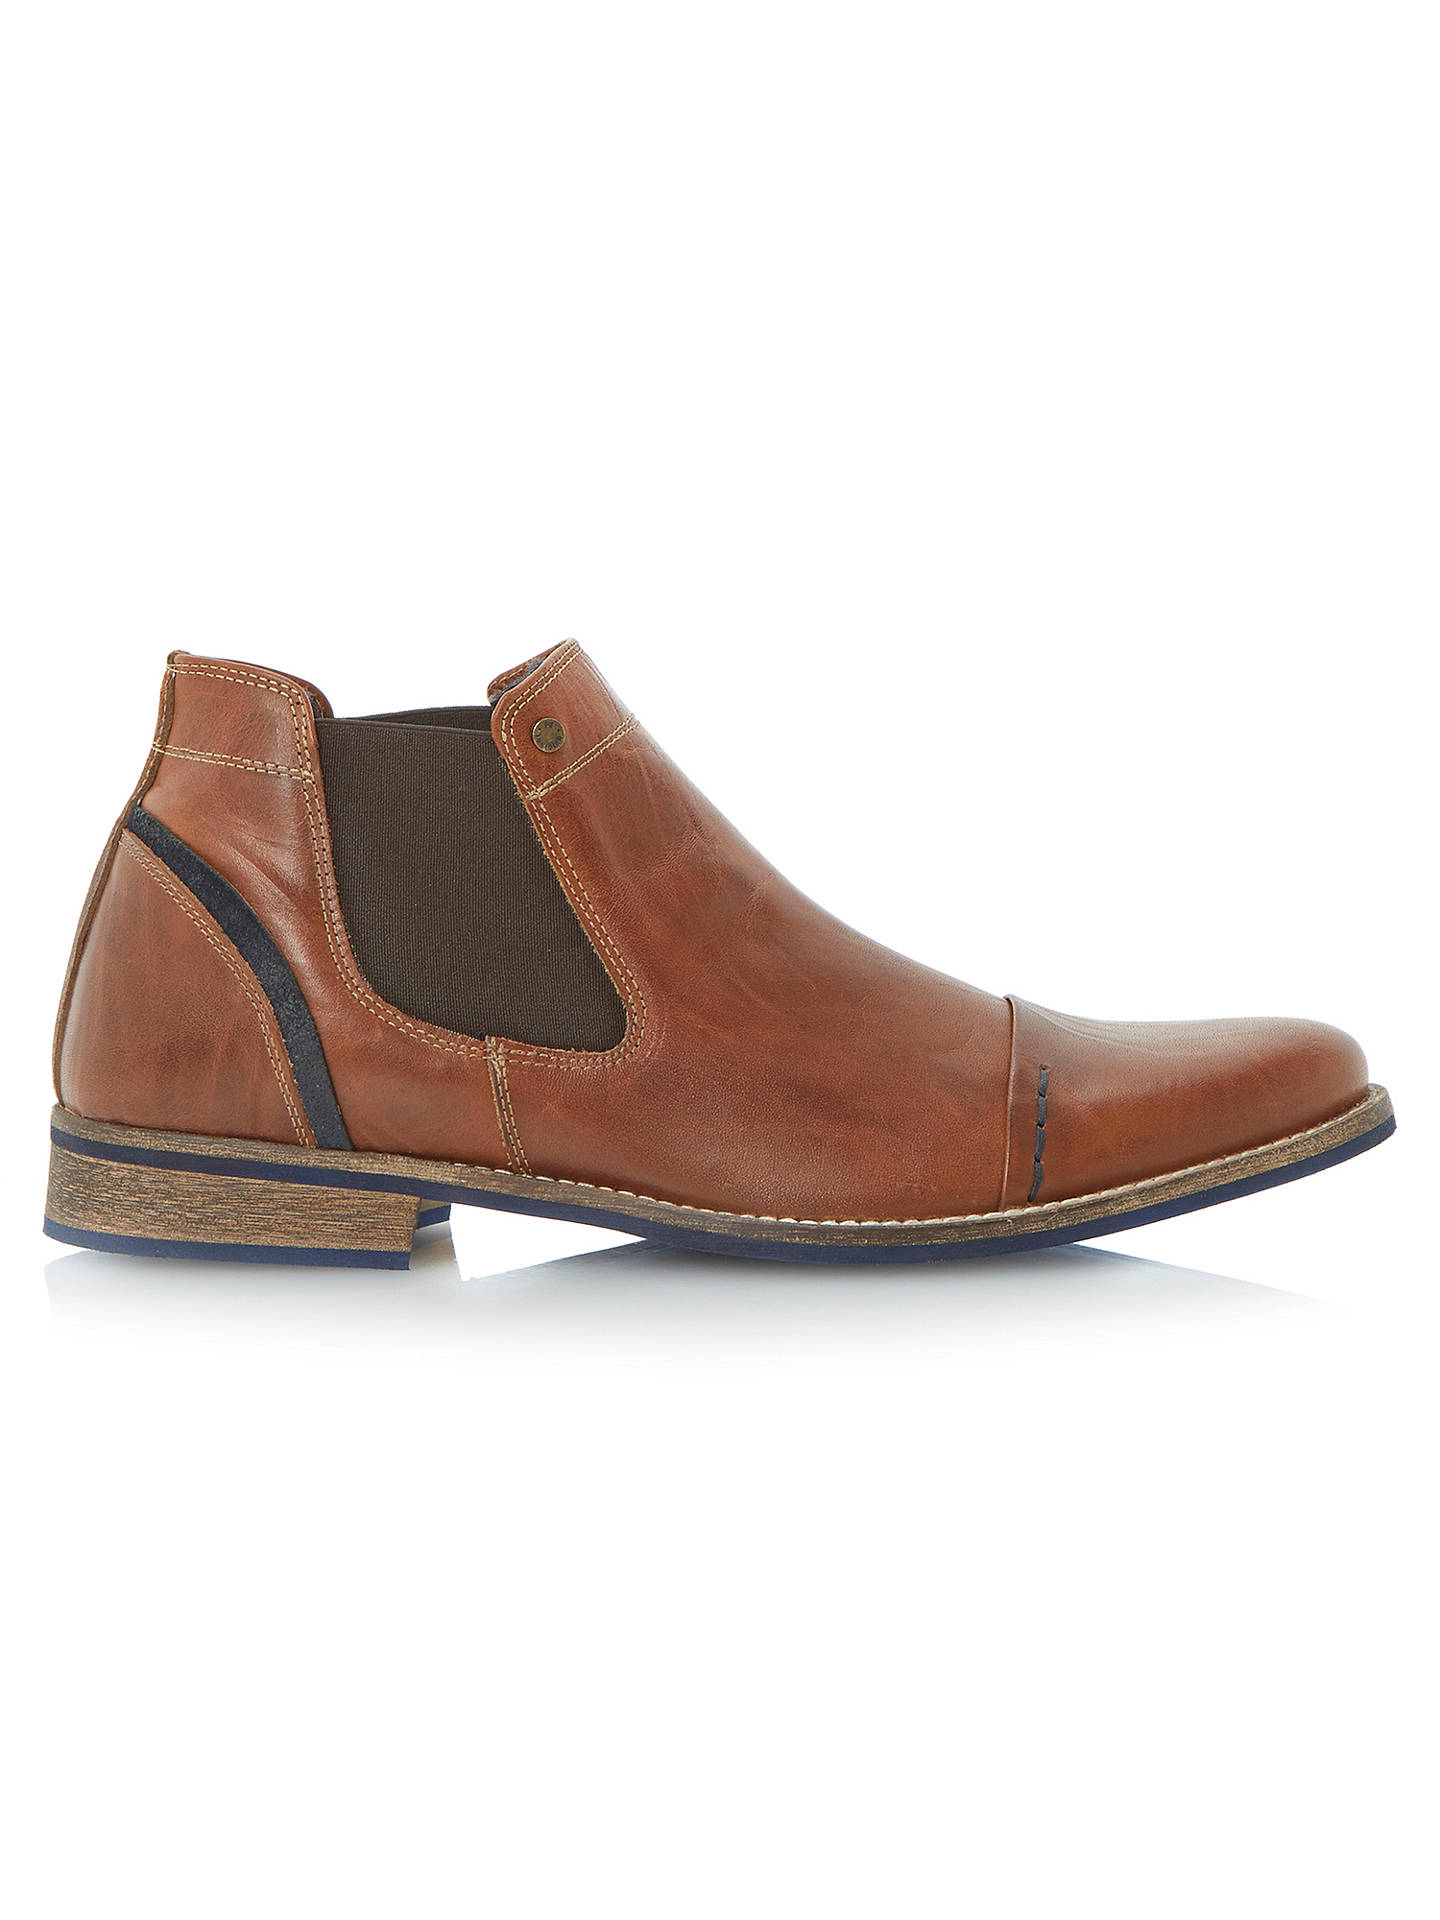 BuyDune Chili Toecap Chelsea Boot, Tan, 7 Online at johnlewis.com ...